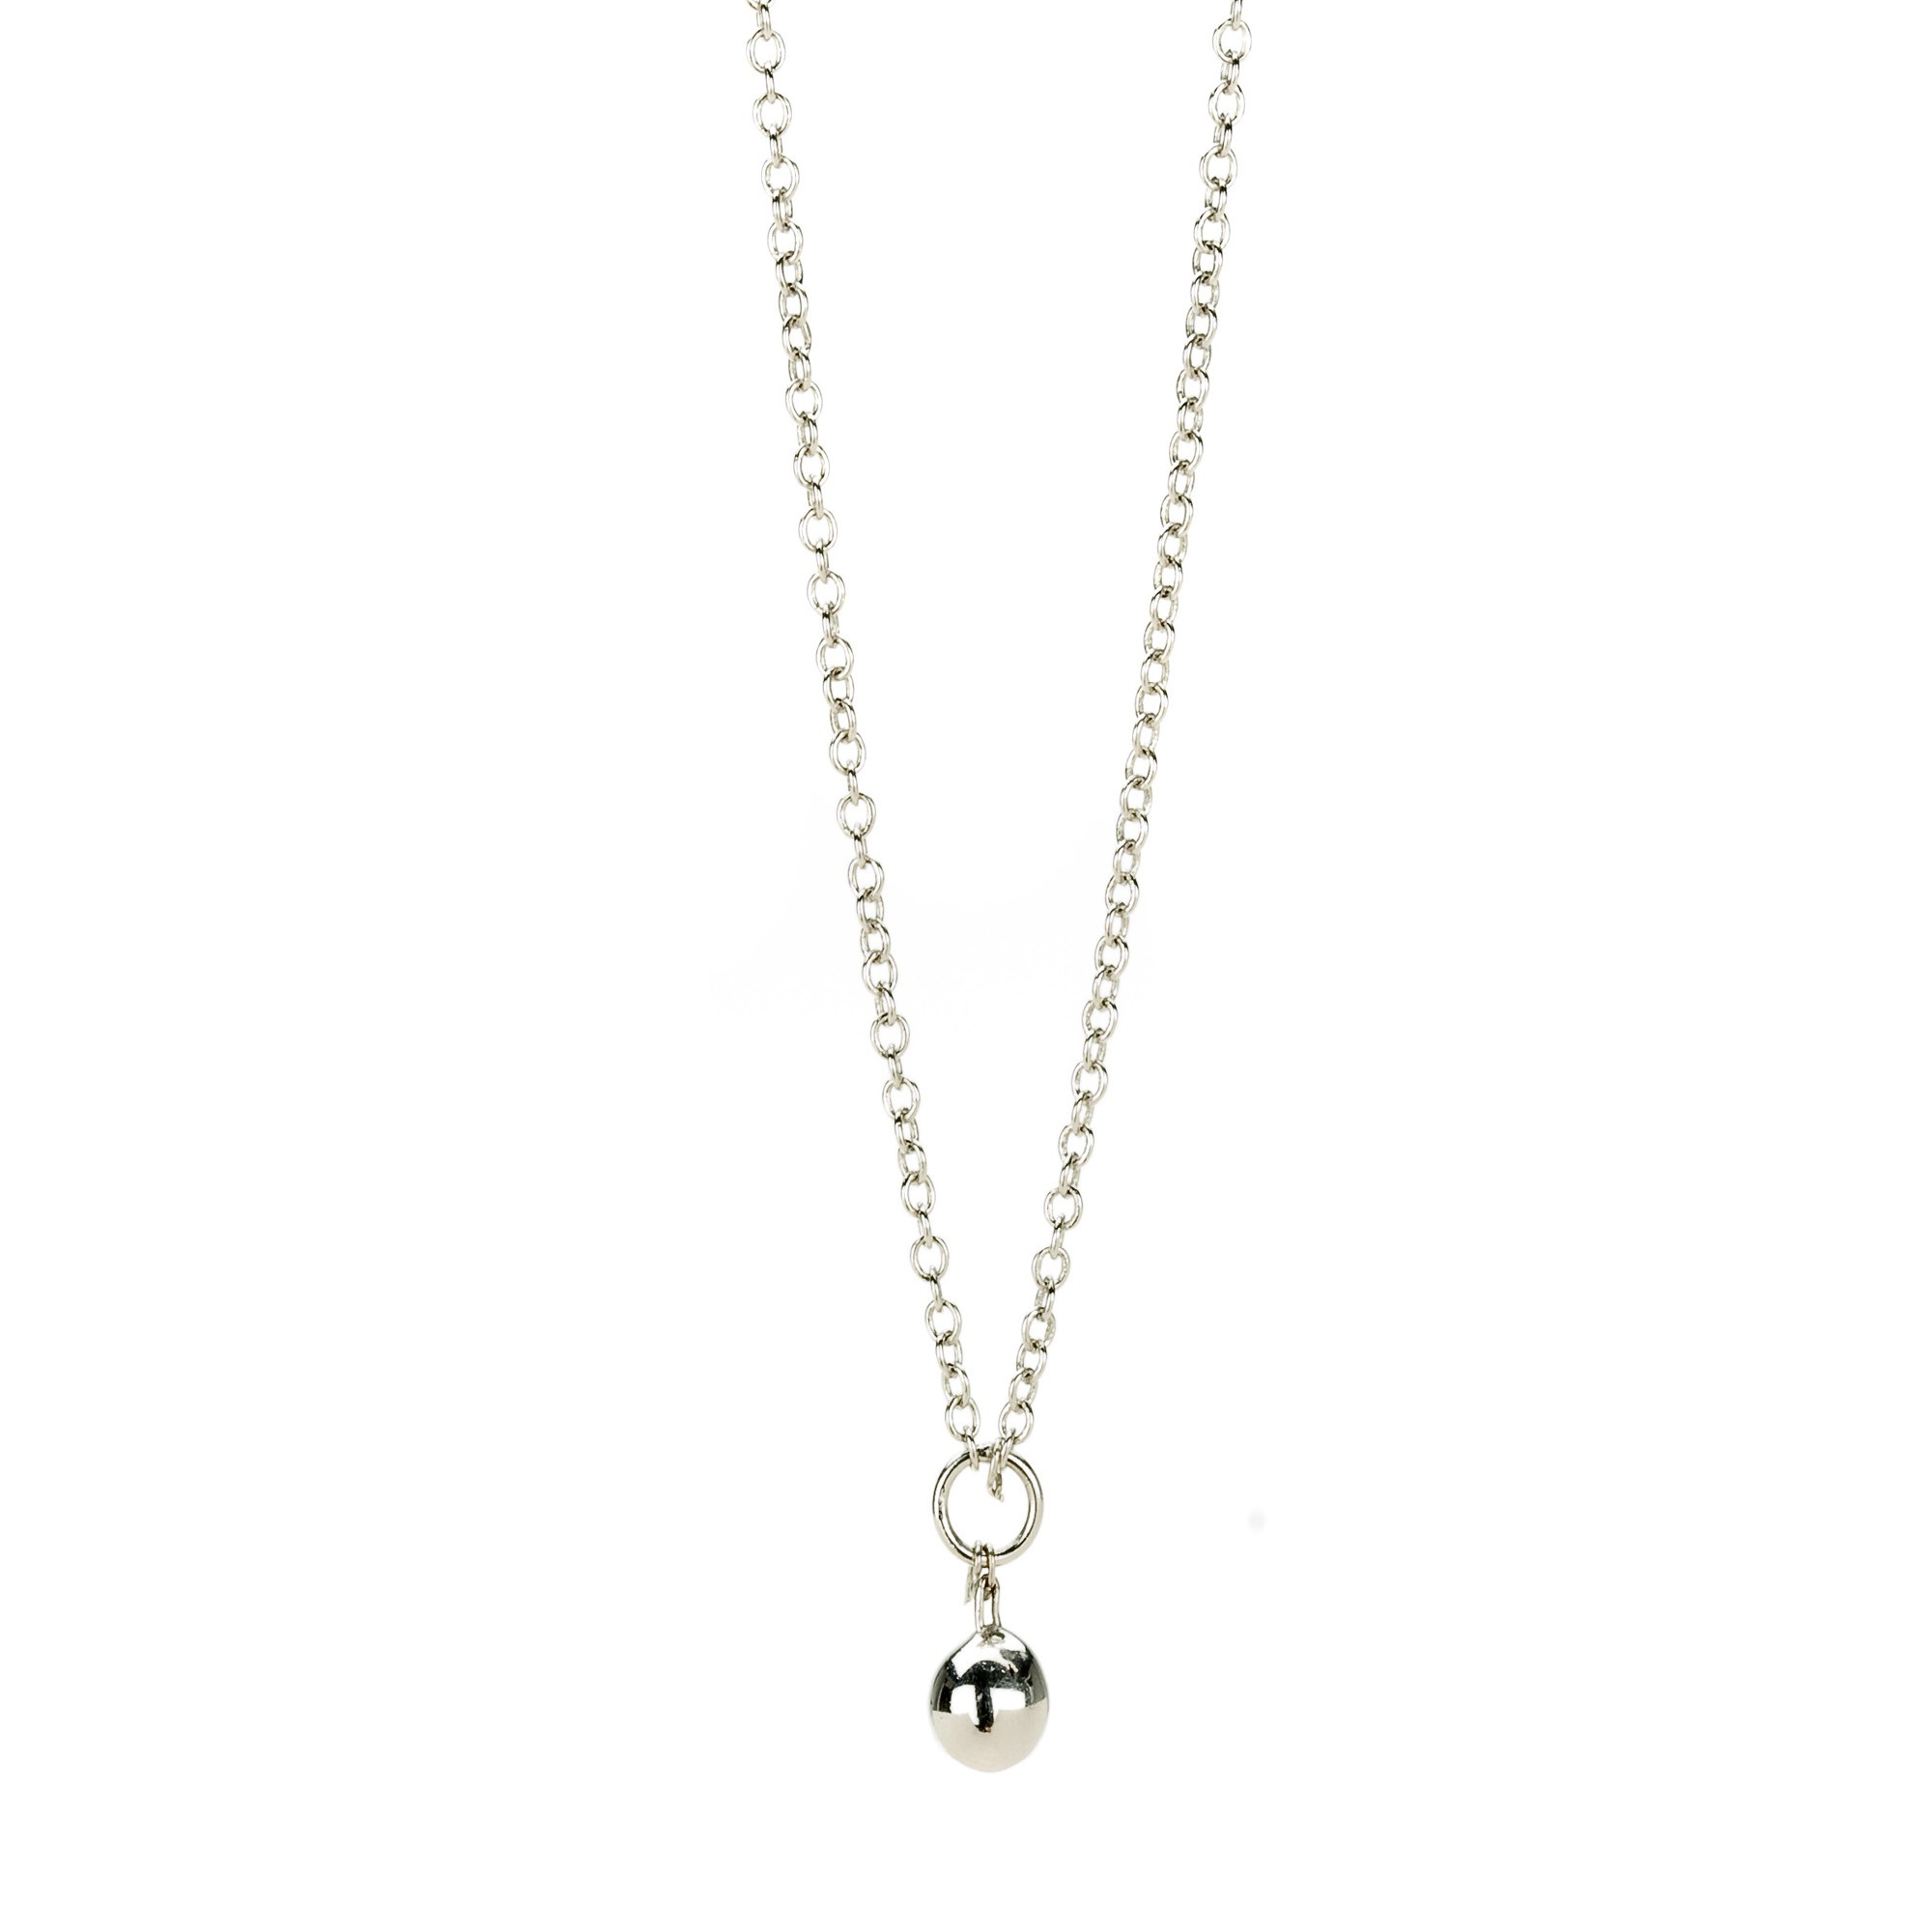 necklace chain chamilia drop chain necklace in sterling silver (36 inches) kkdvrub